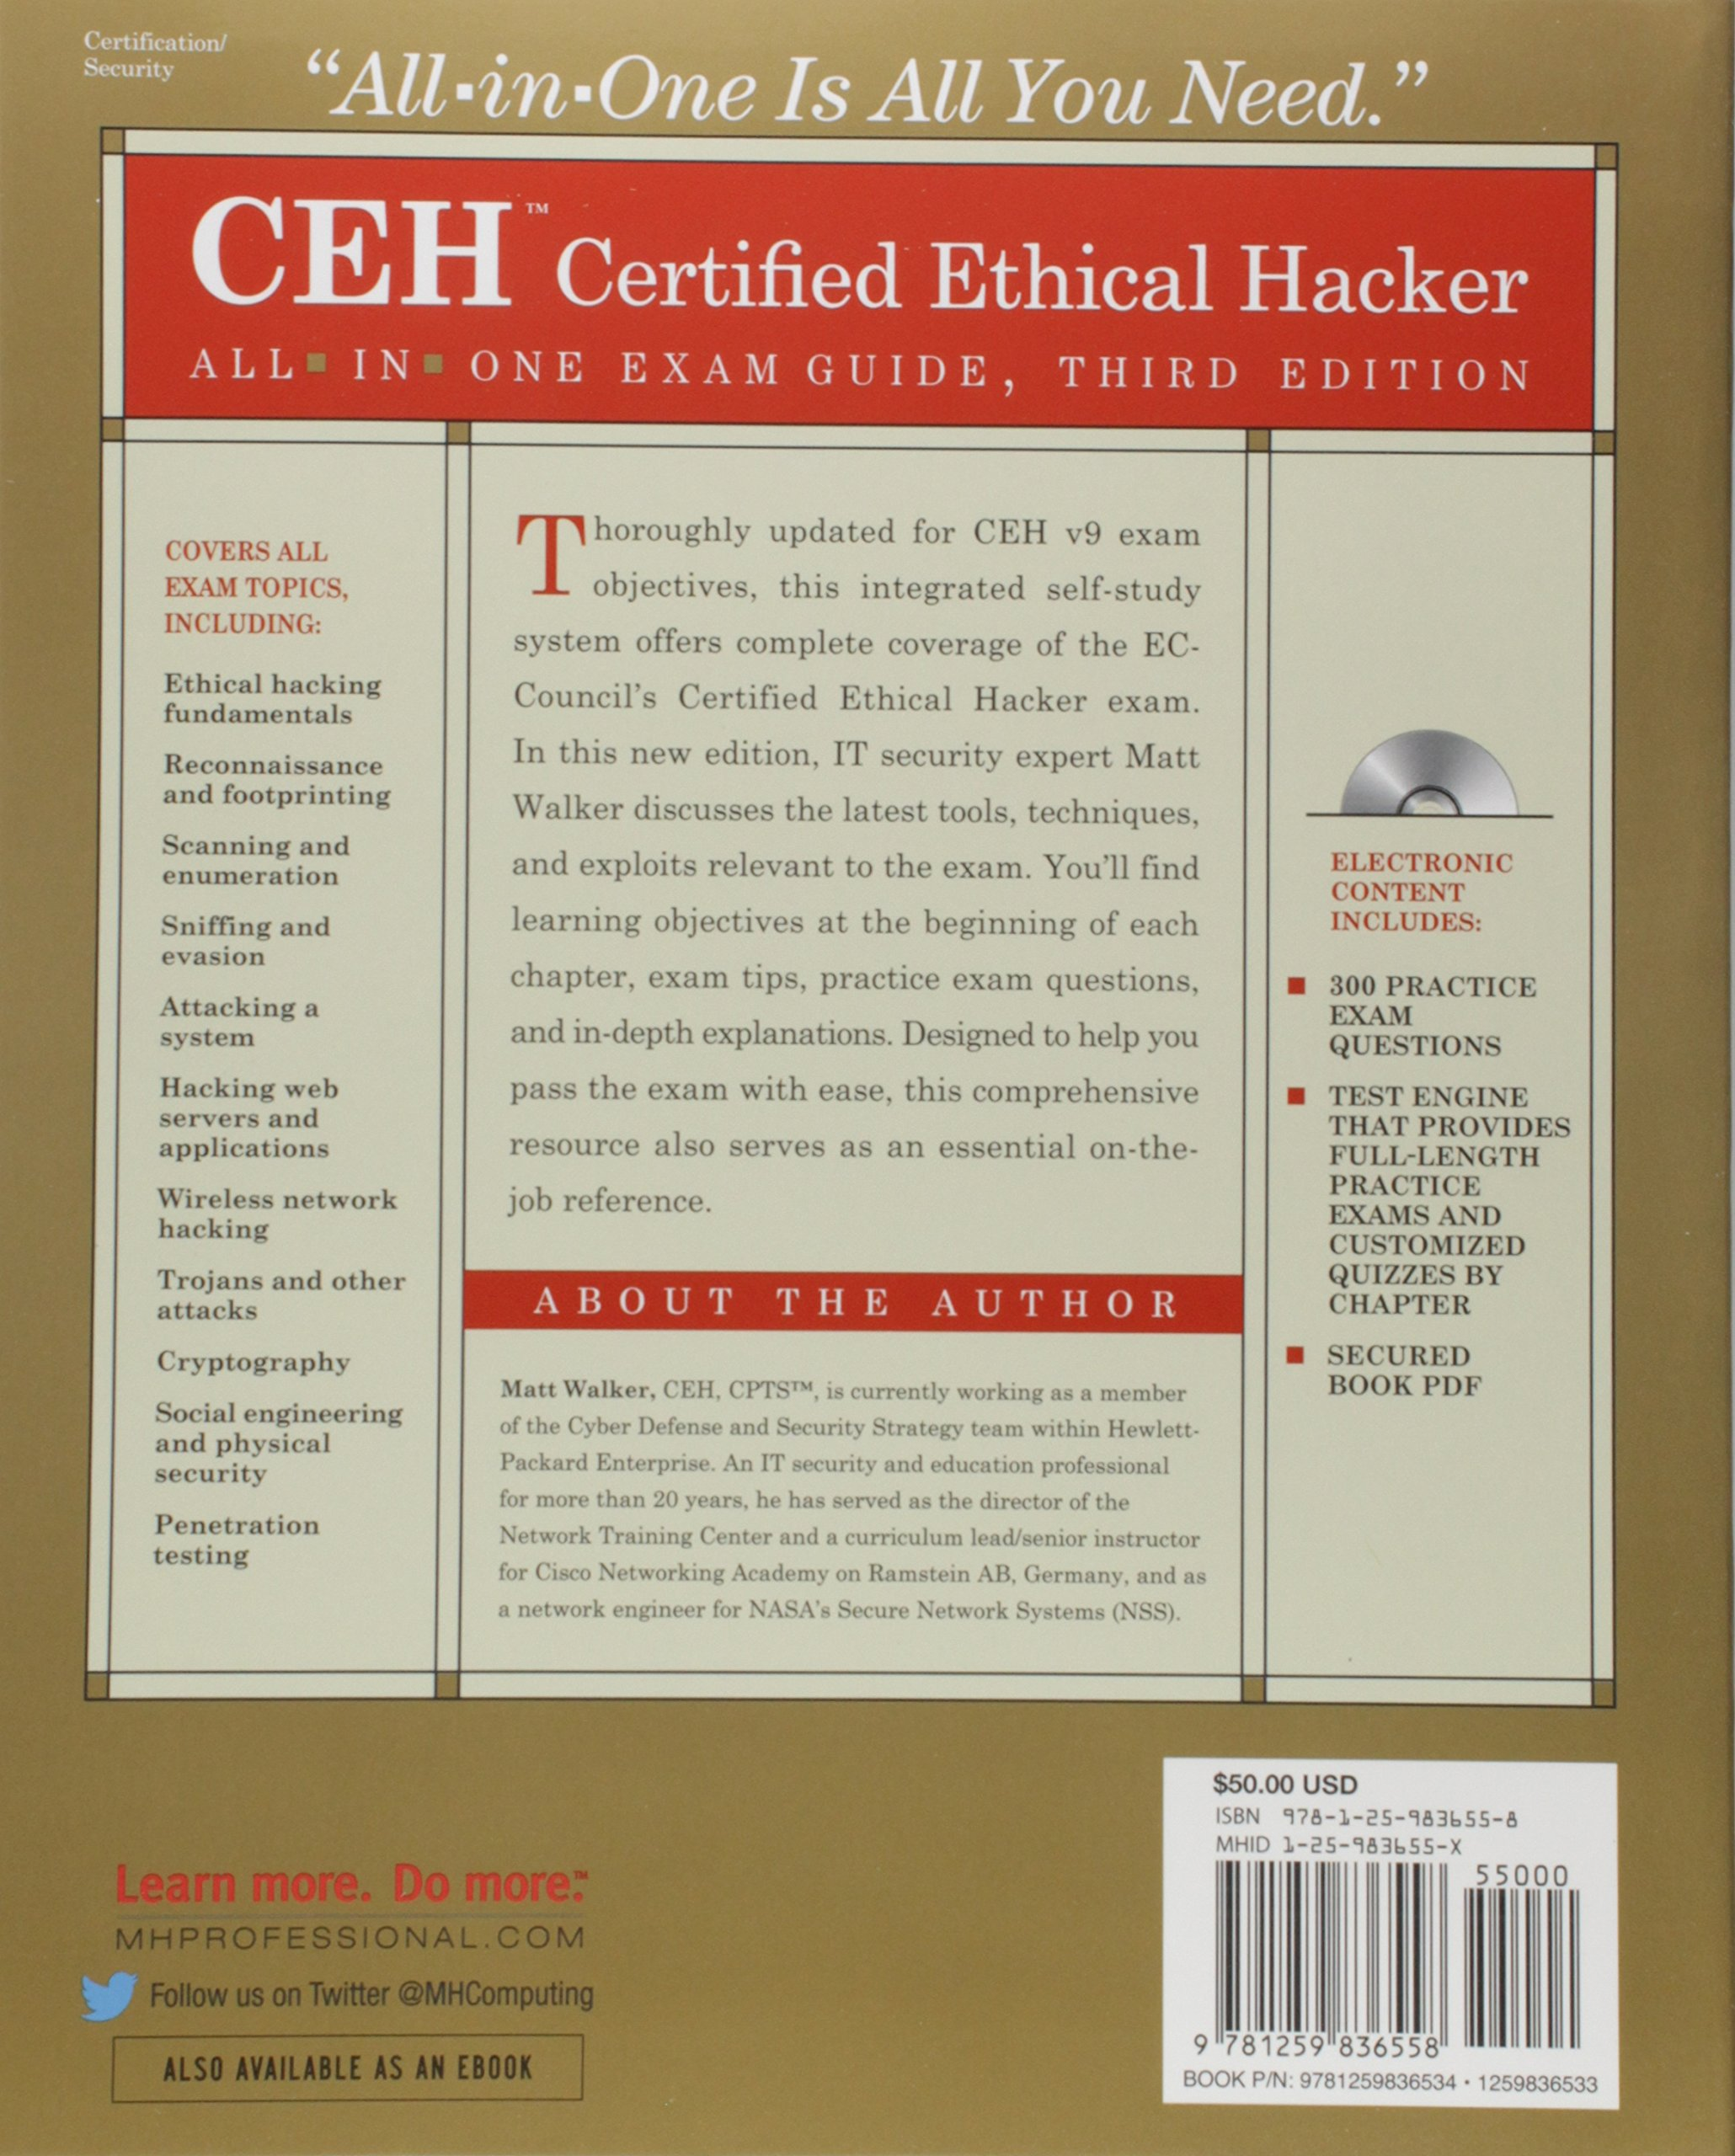 Ceh Certified Ethical Hacker Exam Guide Ceh Certified Ethical